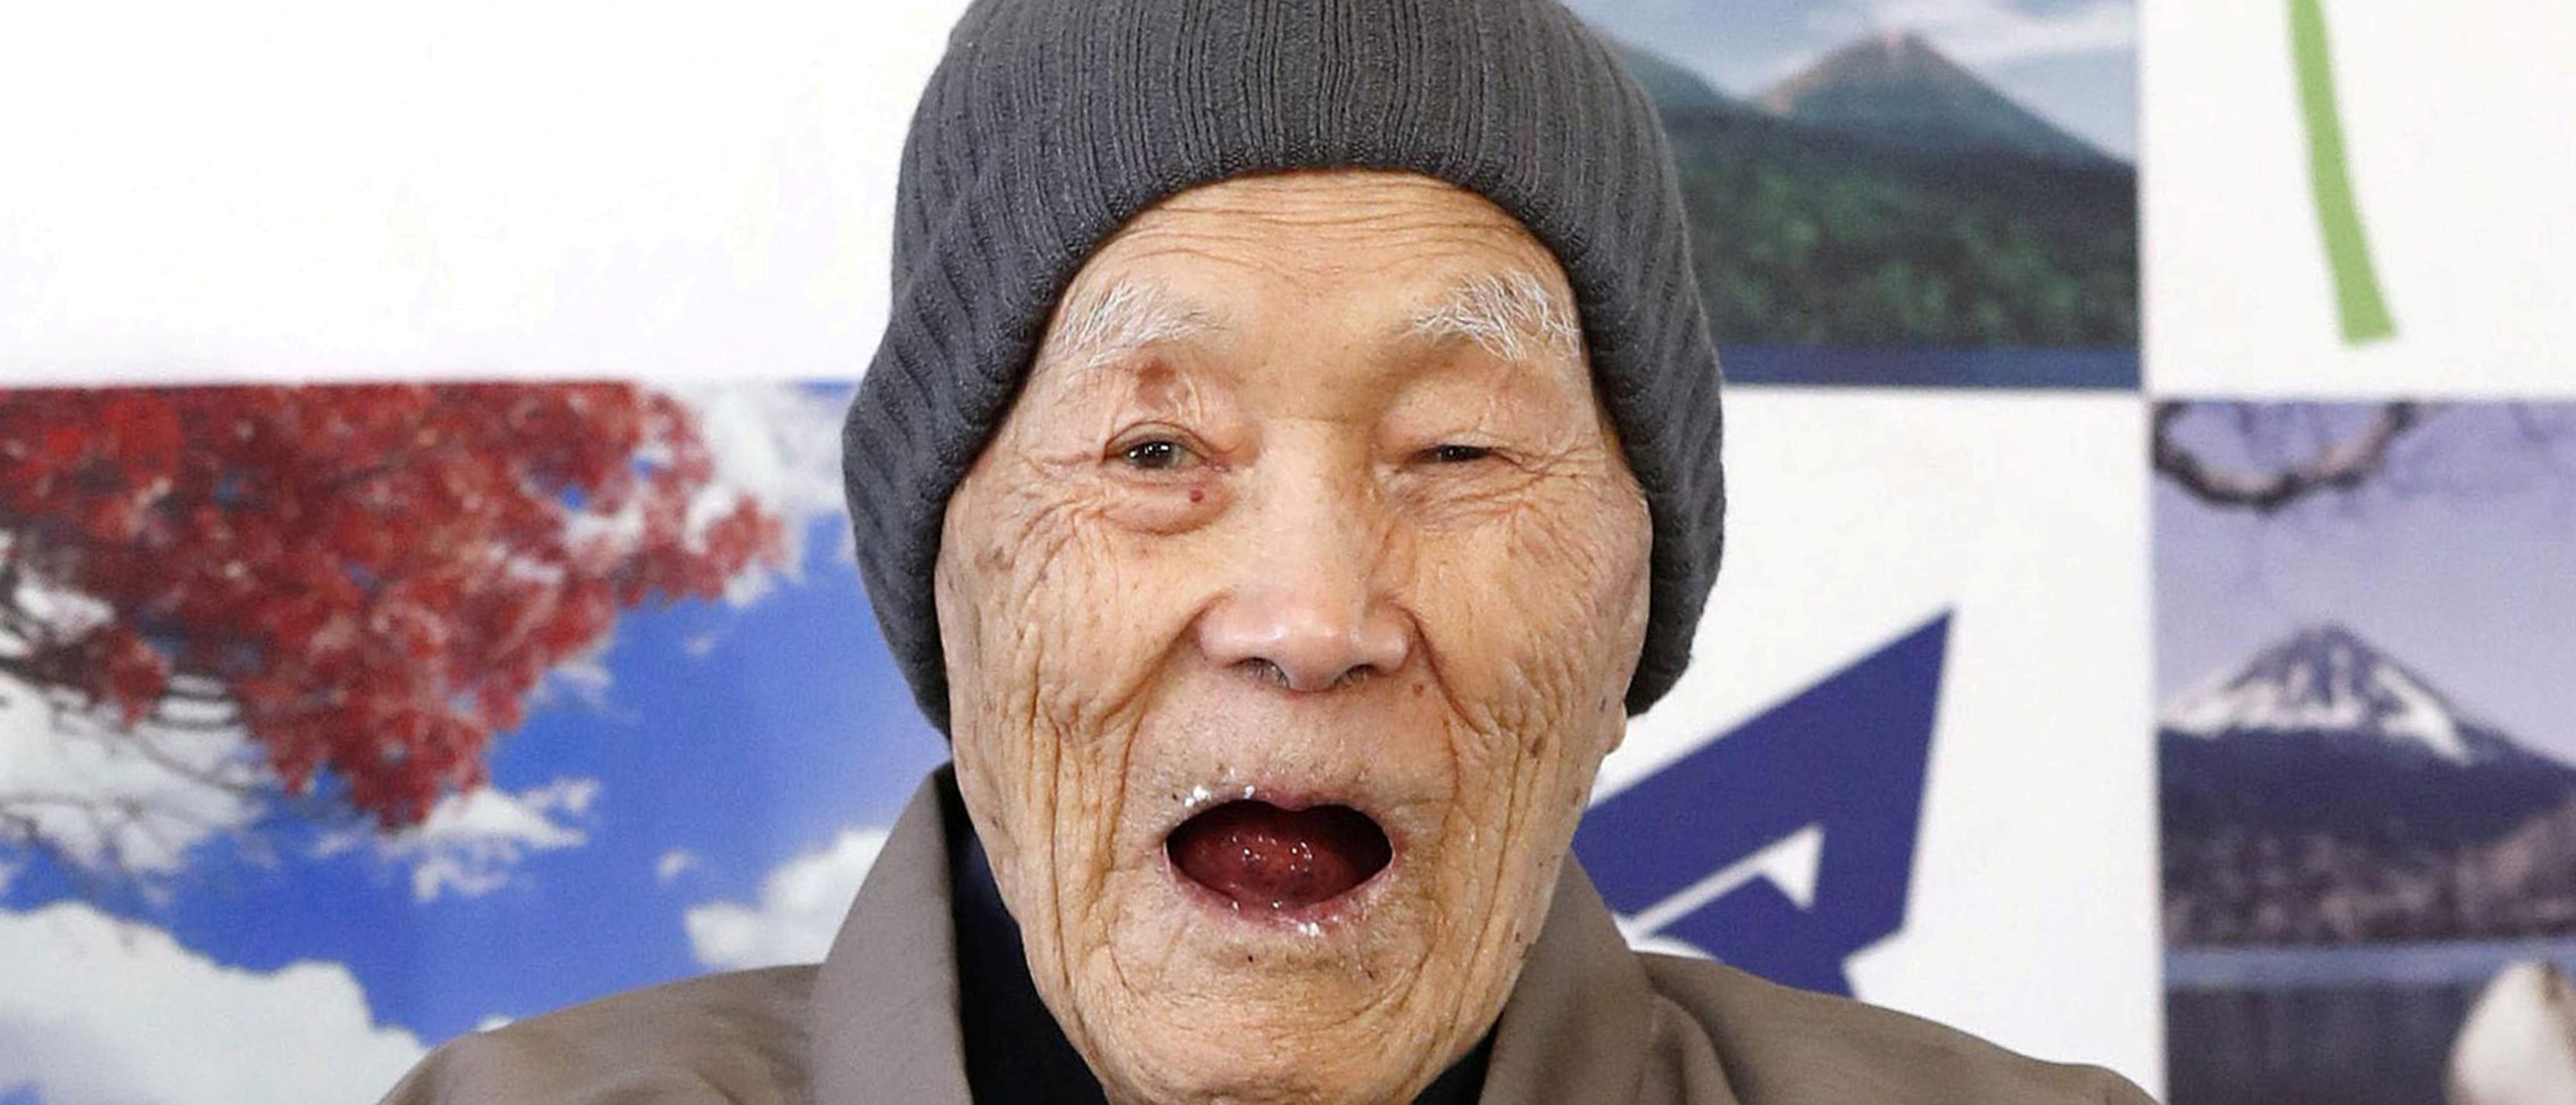 Japanese Masazo Nonaka, who was born 112 years and 259 days ago, eats his favorite cake as he receives a Guinness World Records certificate naming him the world's oldest man during a ceremony in Ashoro, on Japan's northern island of Hokkaido, in this photo taken by Kyodo April 10, 2018.   Mandatory credit Kyodo/via REUTERS